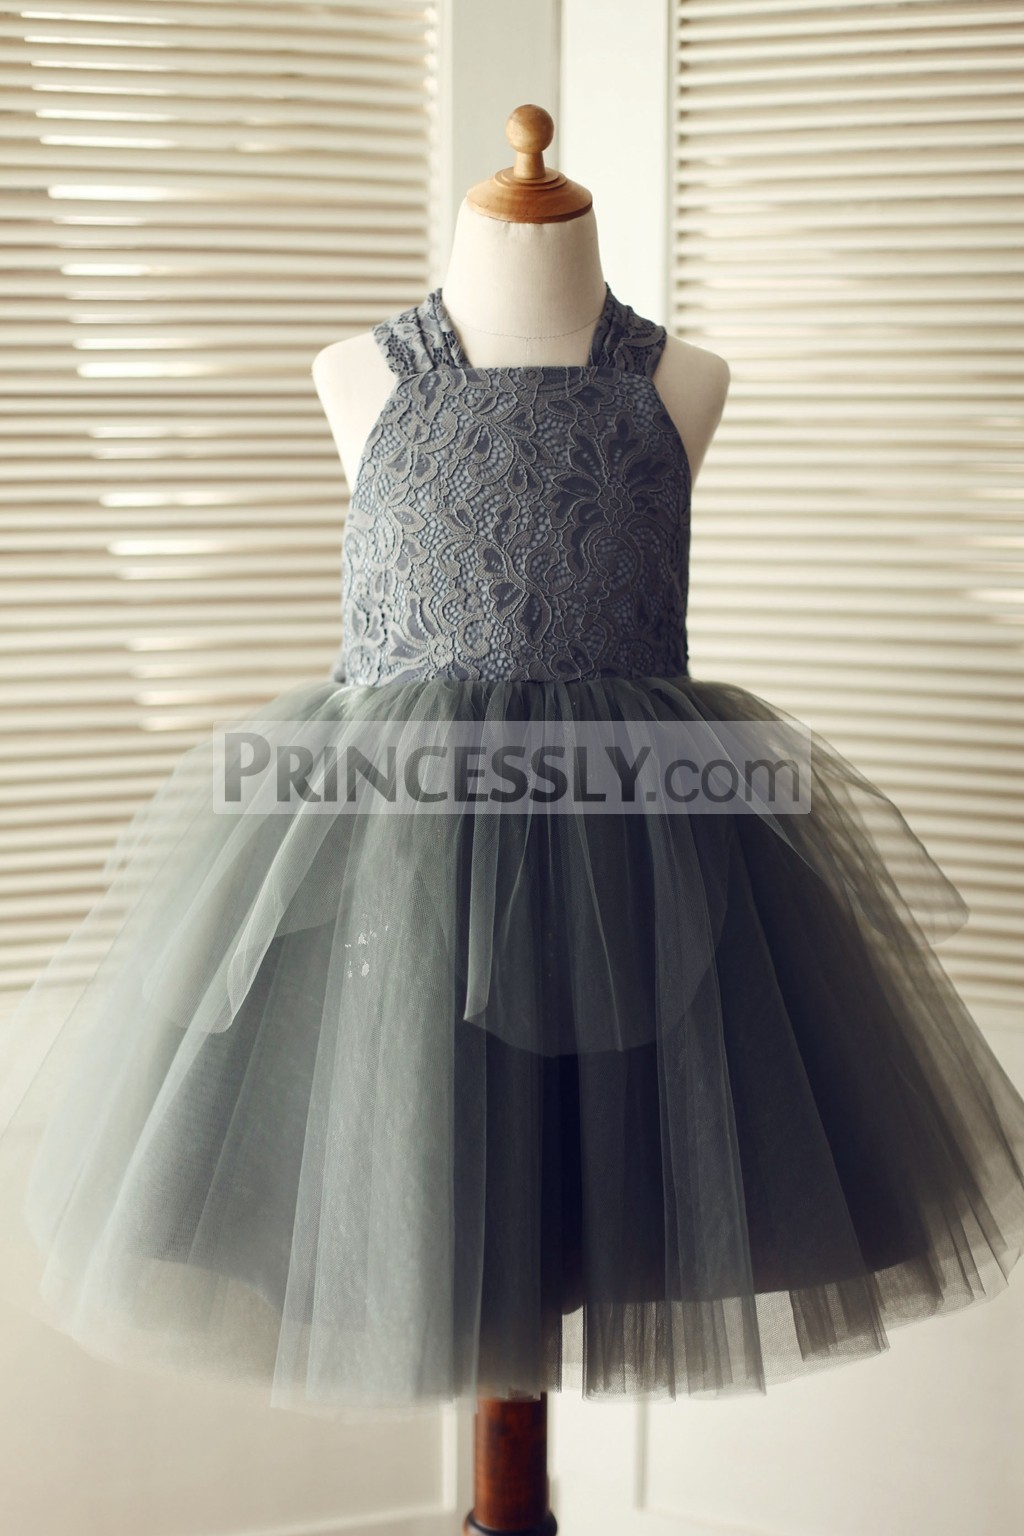 Princessly.com-K1003319-Backless Gray Lace Tulle Flower Girl Dress with Big Bow-31